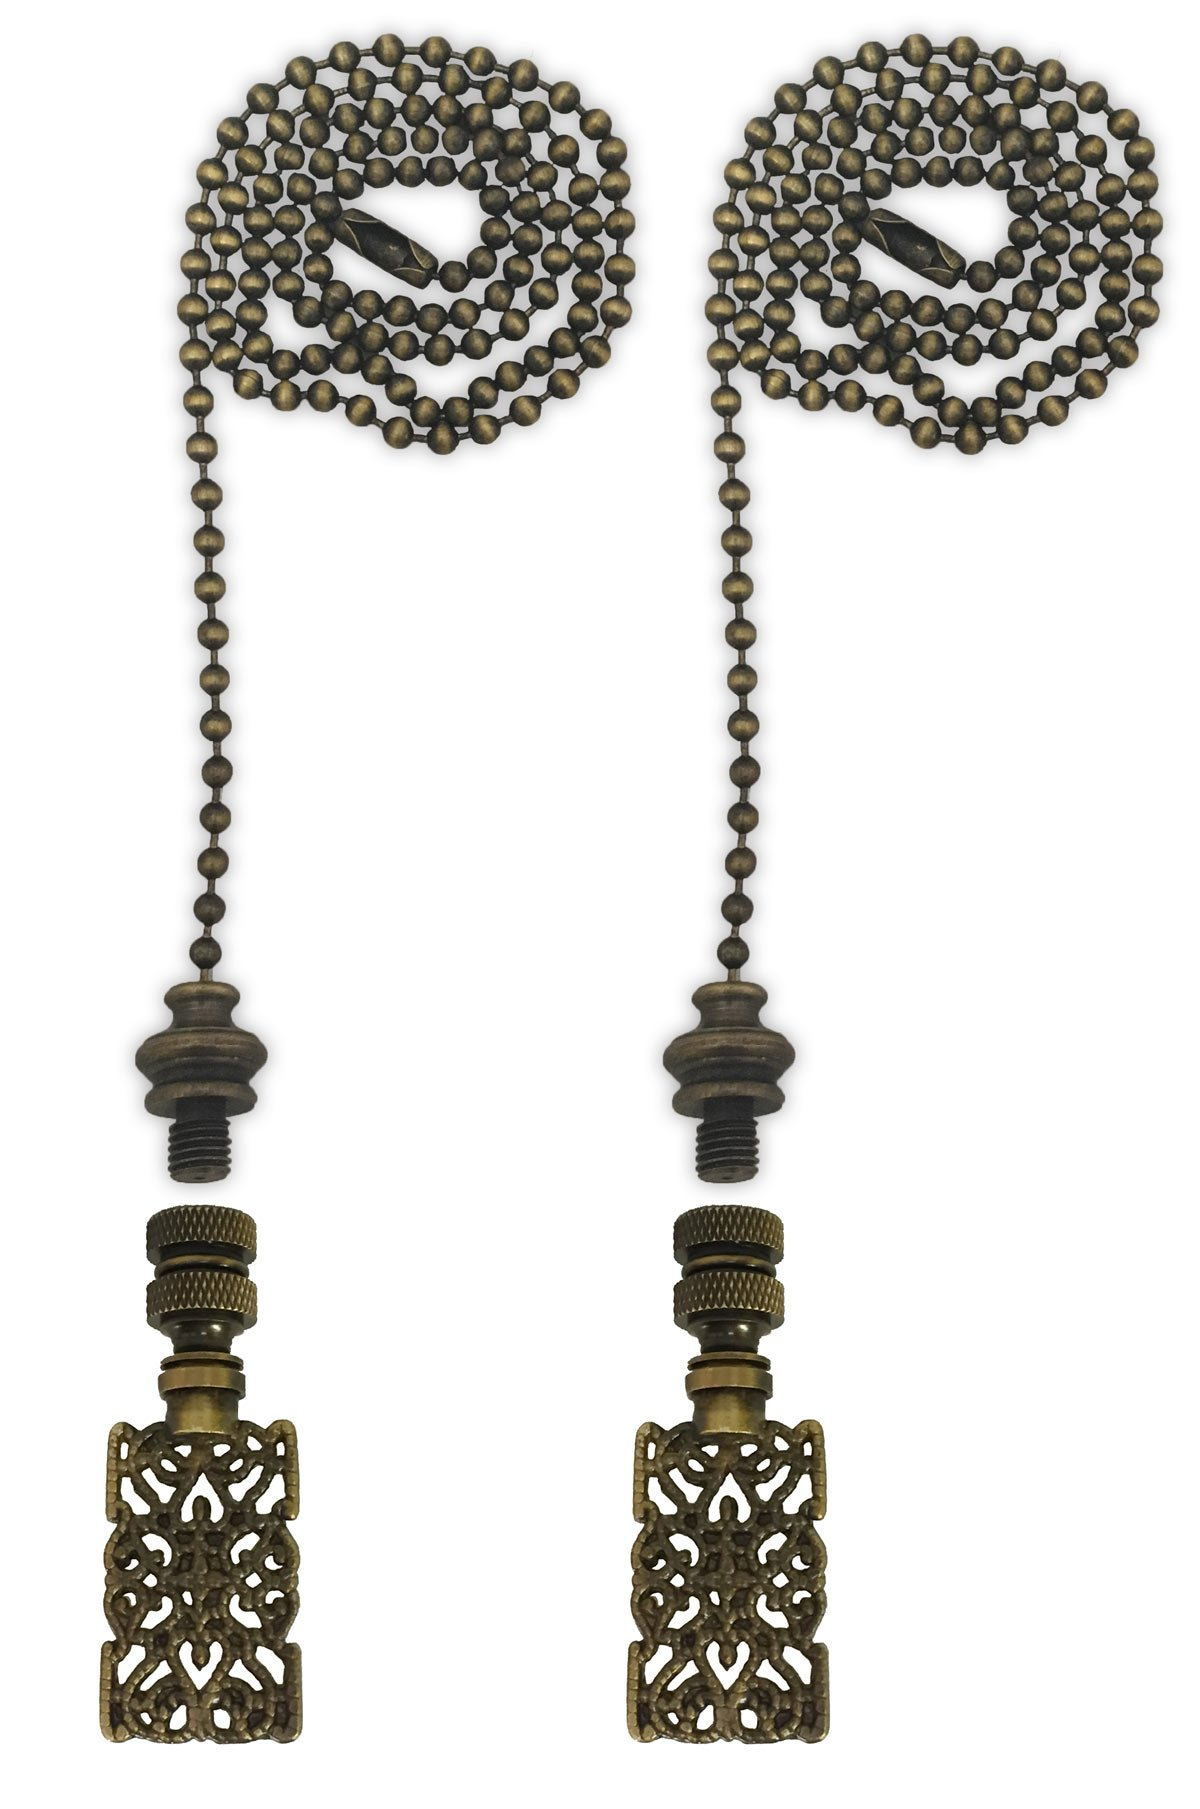 Royal Designs Fan Pull Chain with Rectangle Center Cross Filigree Finial - Antique Brass - Set of 2